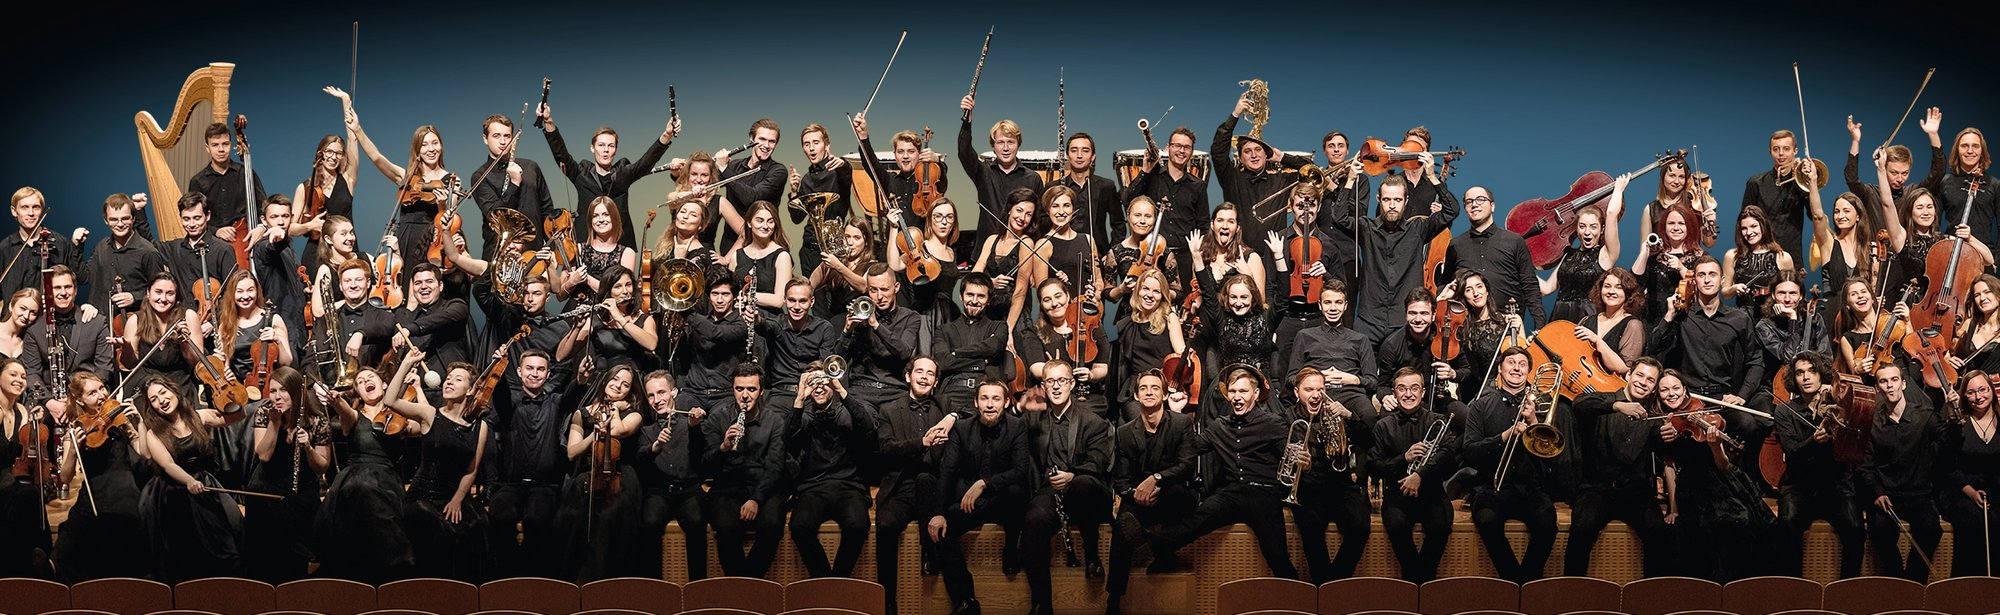 (c) Russian National Youth Symphony Orchestra